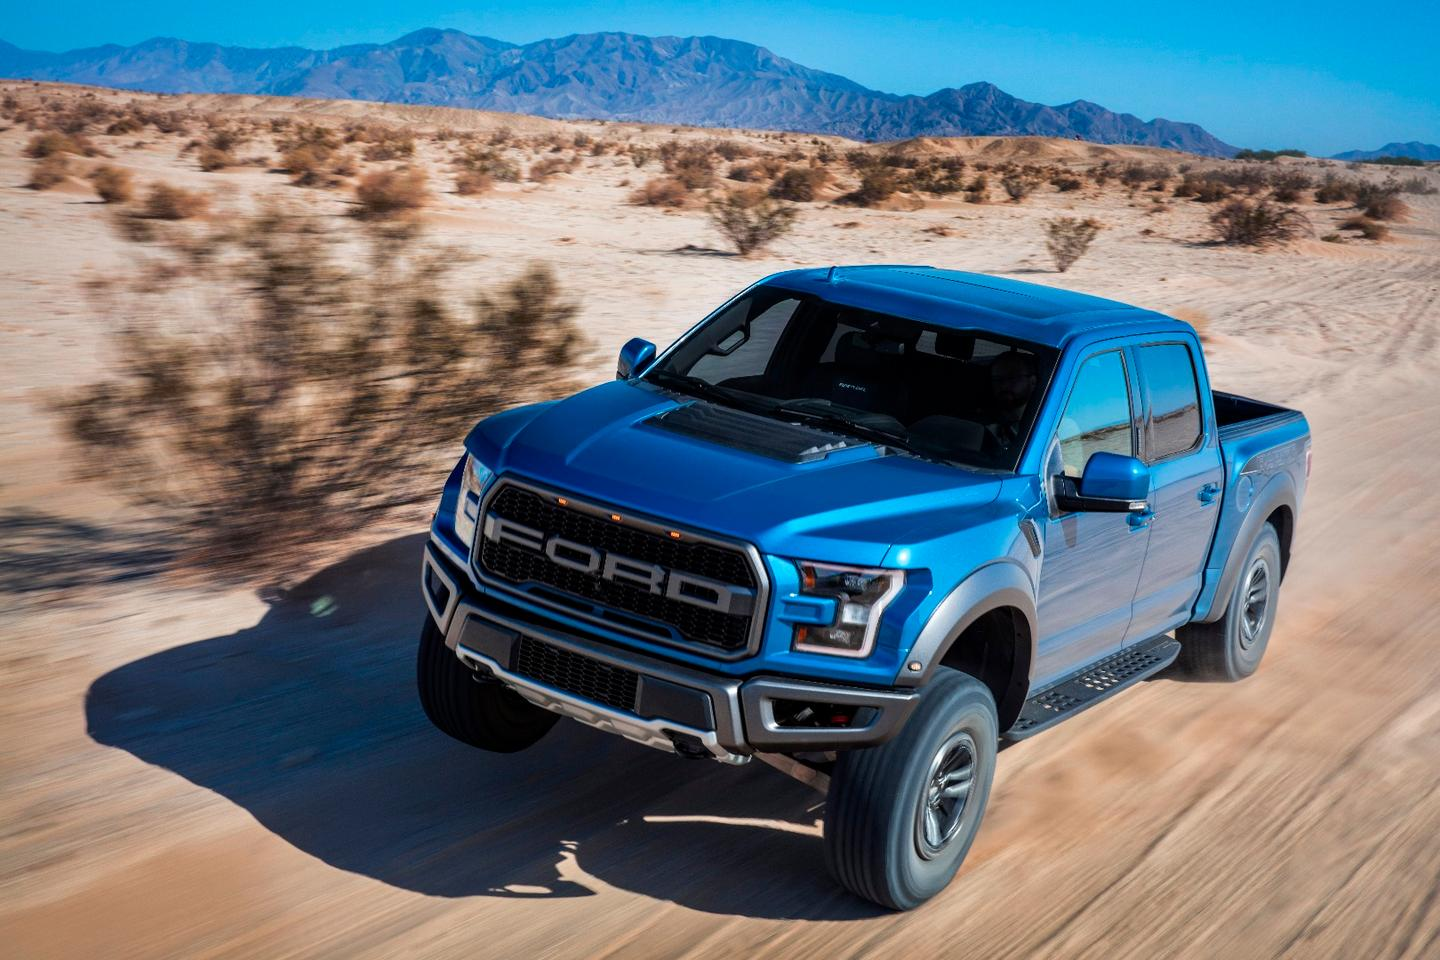 With its 3.5-liter twin turbo V6, the 450-horsepower F-150 Raptor packs plenty of punch, but the way Ford sees it there's more to off-road muscle than sheer engine power